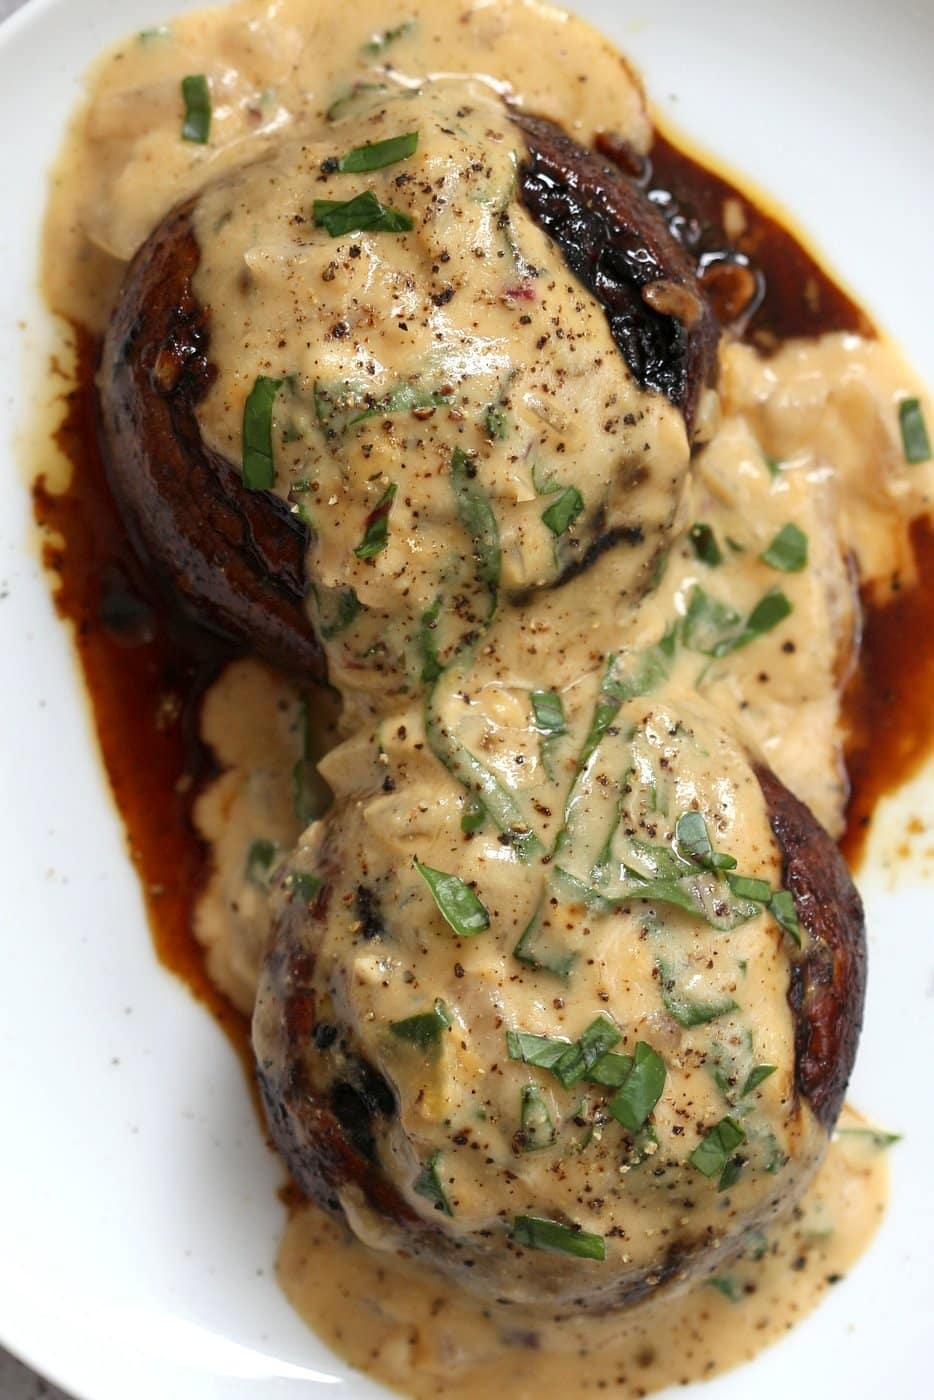 Marinated Portobello Mushroom with Vegan Garlic Sauce